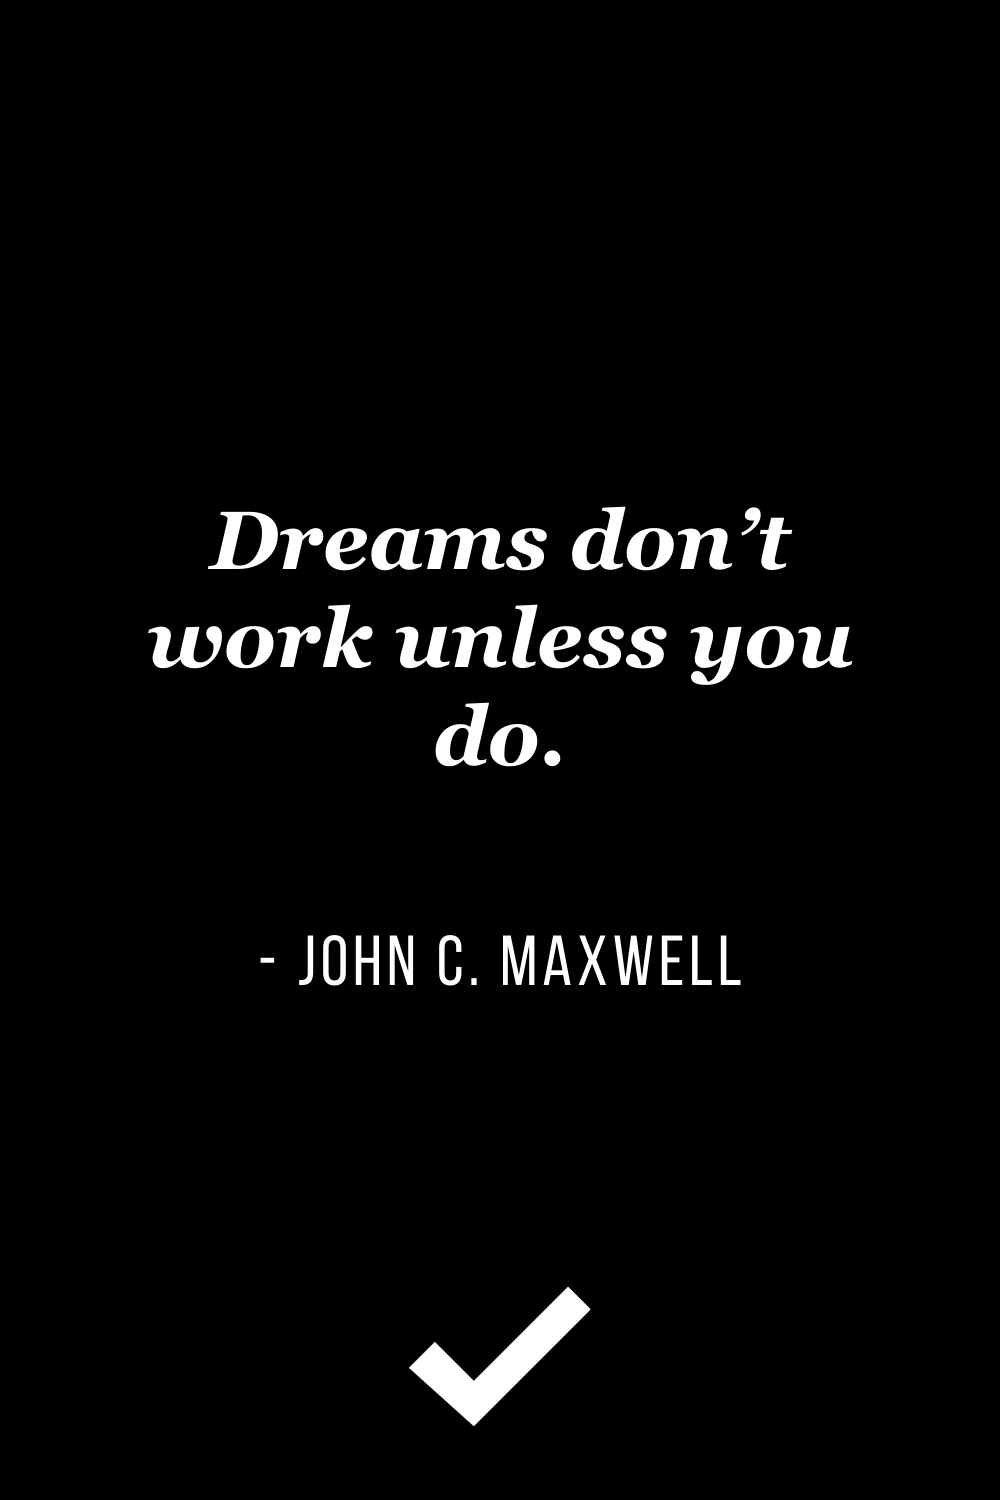 """""""Dreams don't work unless you do."""" – John C. Maxwell"""